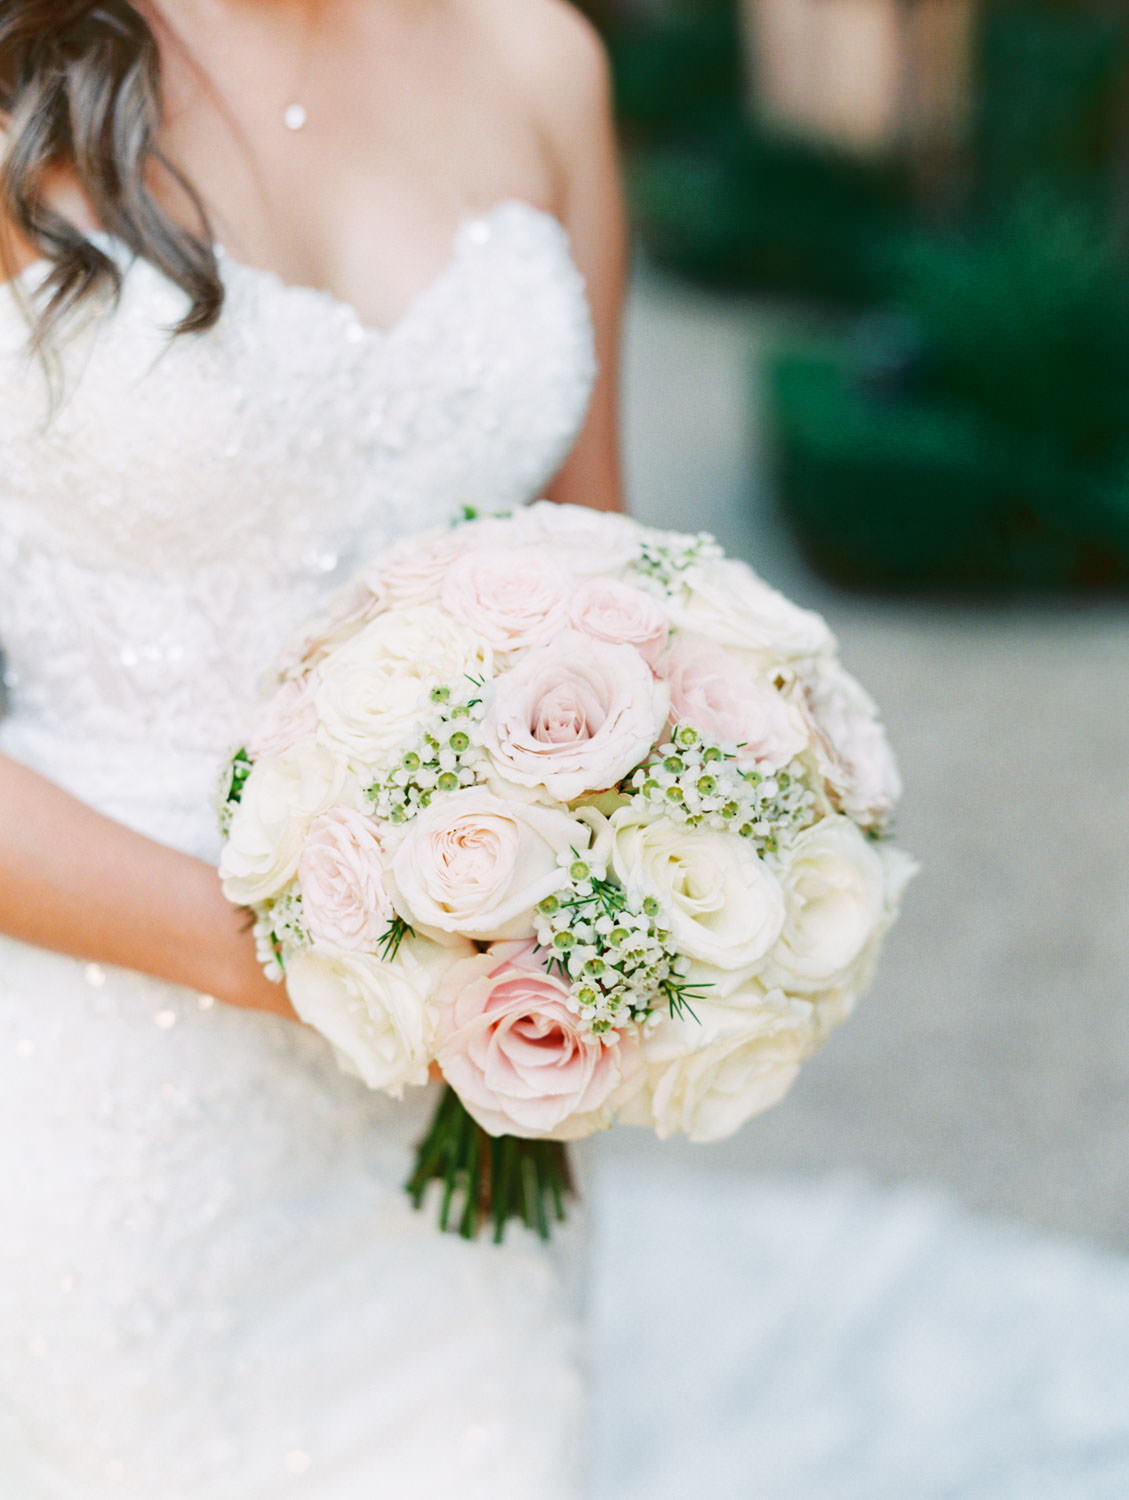 Round pave bouquet with ivory and blush roses and greenery. Bride in a Martina Liana gown from the White Flower Bridal Boutique. Rancho Bernardo Inn wedding. Film photo by Cavin Elizabeth Photography